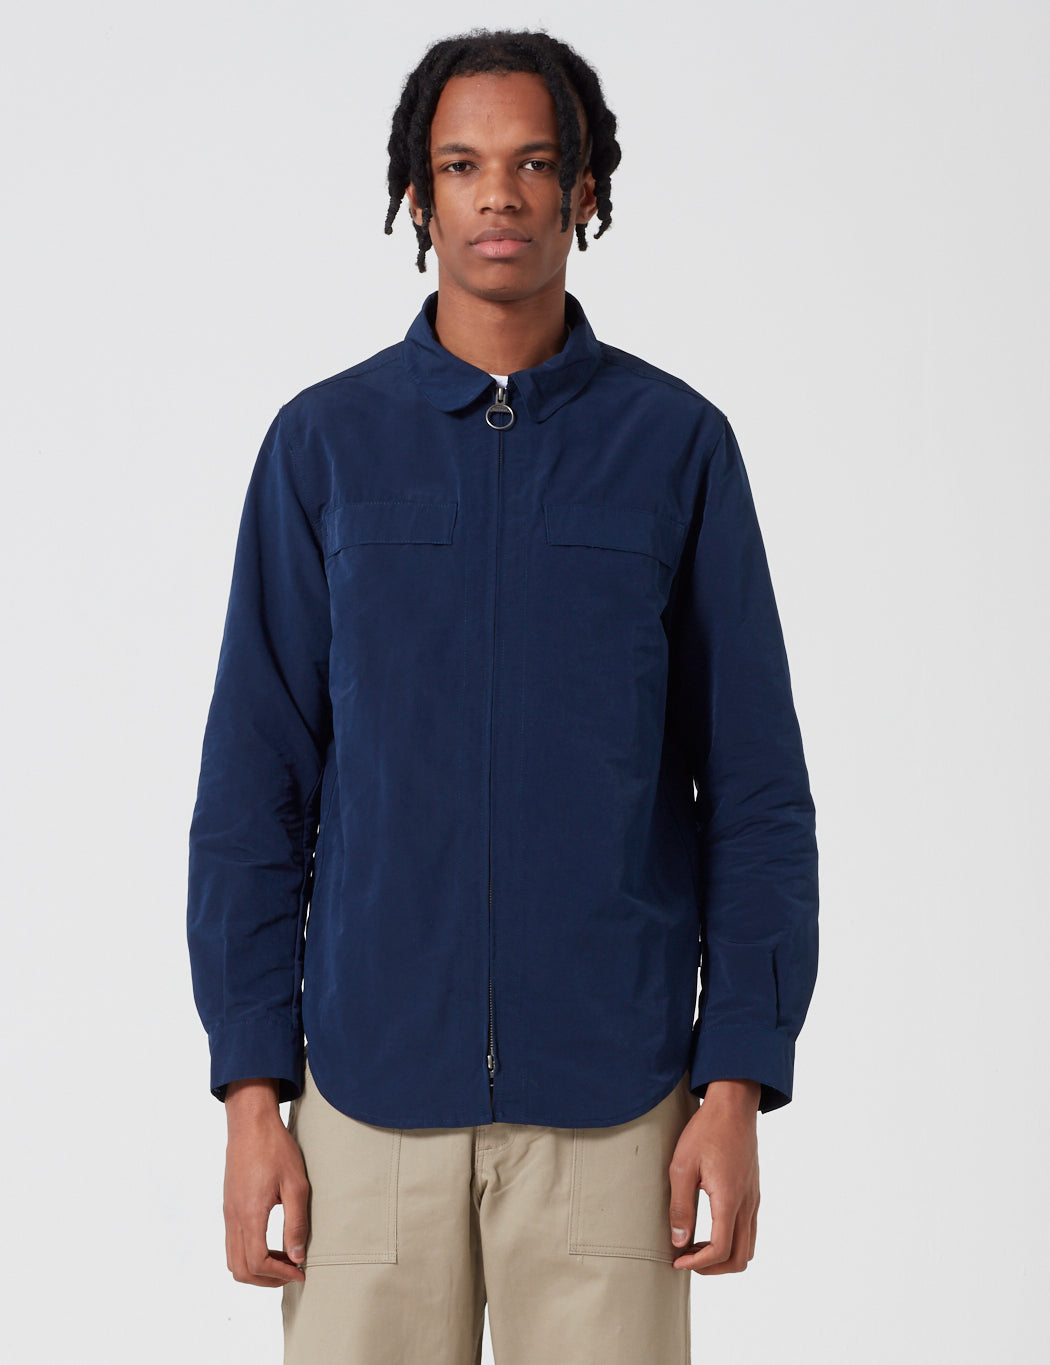 Barbour Hoad Zip Overshirt - Navy Blue